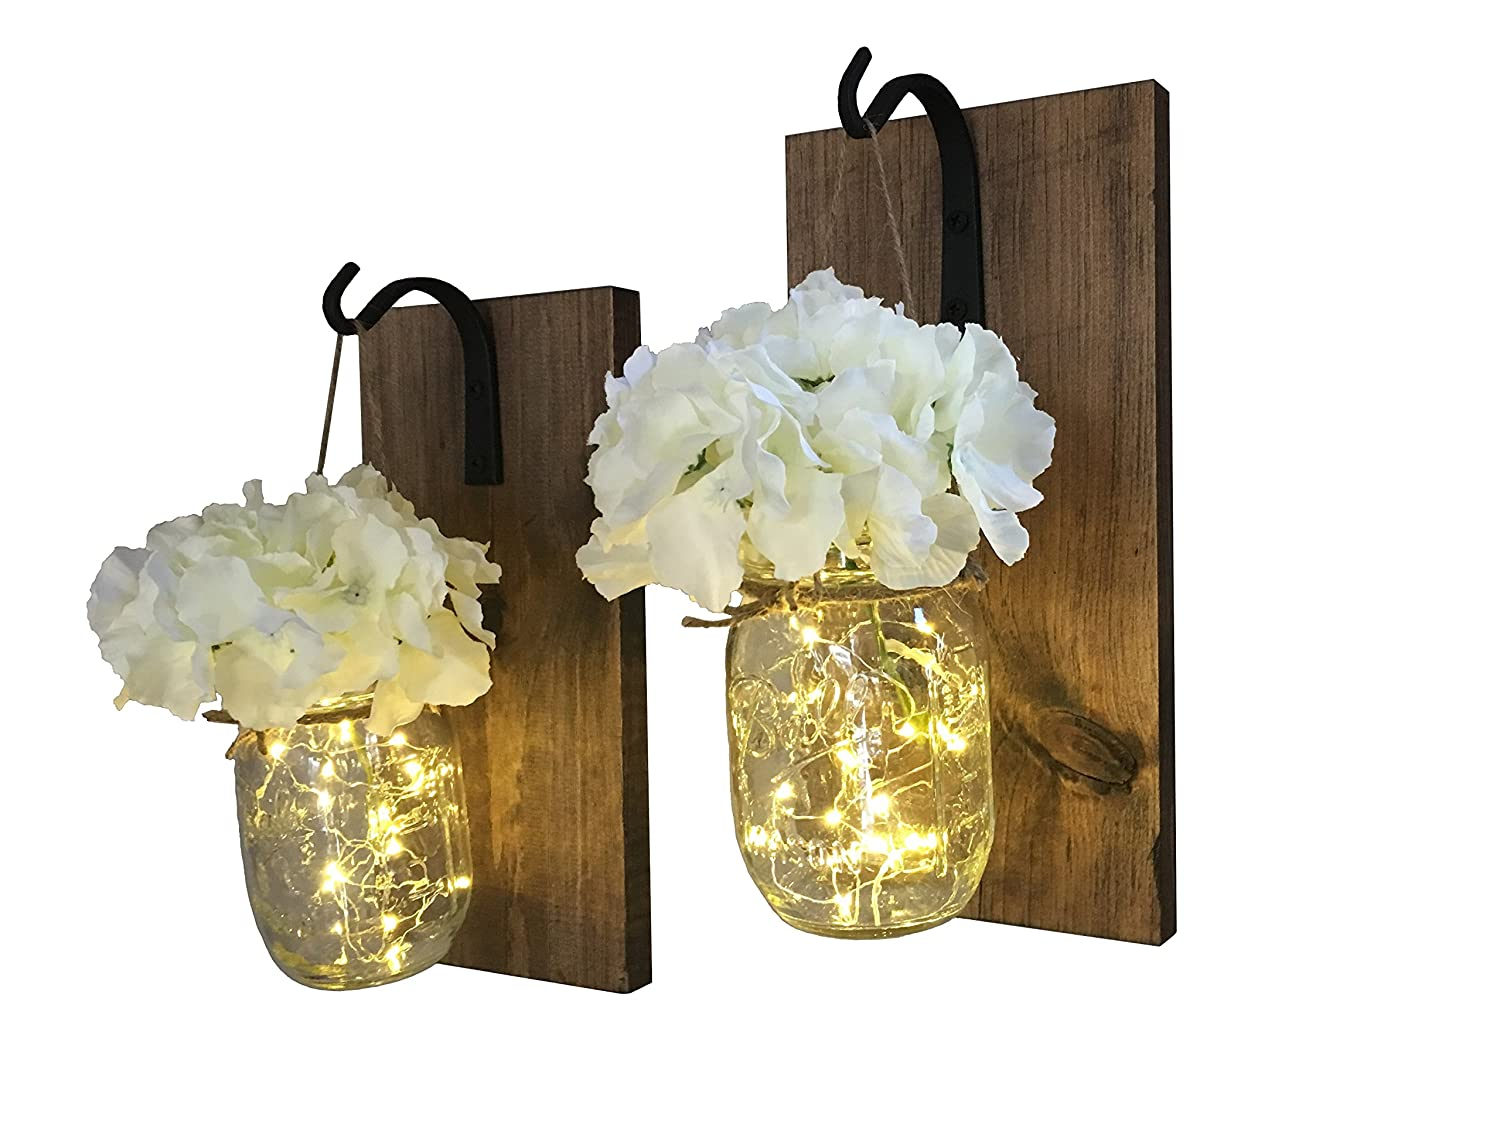 Rustic Hanging Mason Jar Sconces with LED Fairy Lights, Mason Jar Lights, Wrought Iron Hooks, Silk Hydrangea Flower, LED Strip Lights with Batteries Included, Rustic Home Decor (Set of 2)